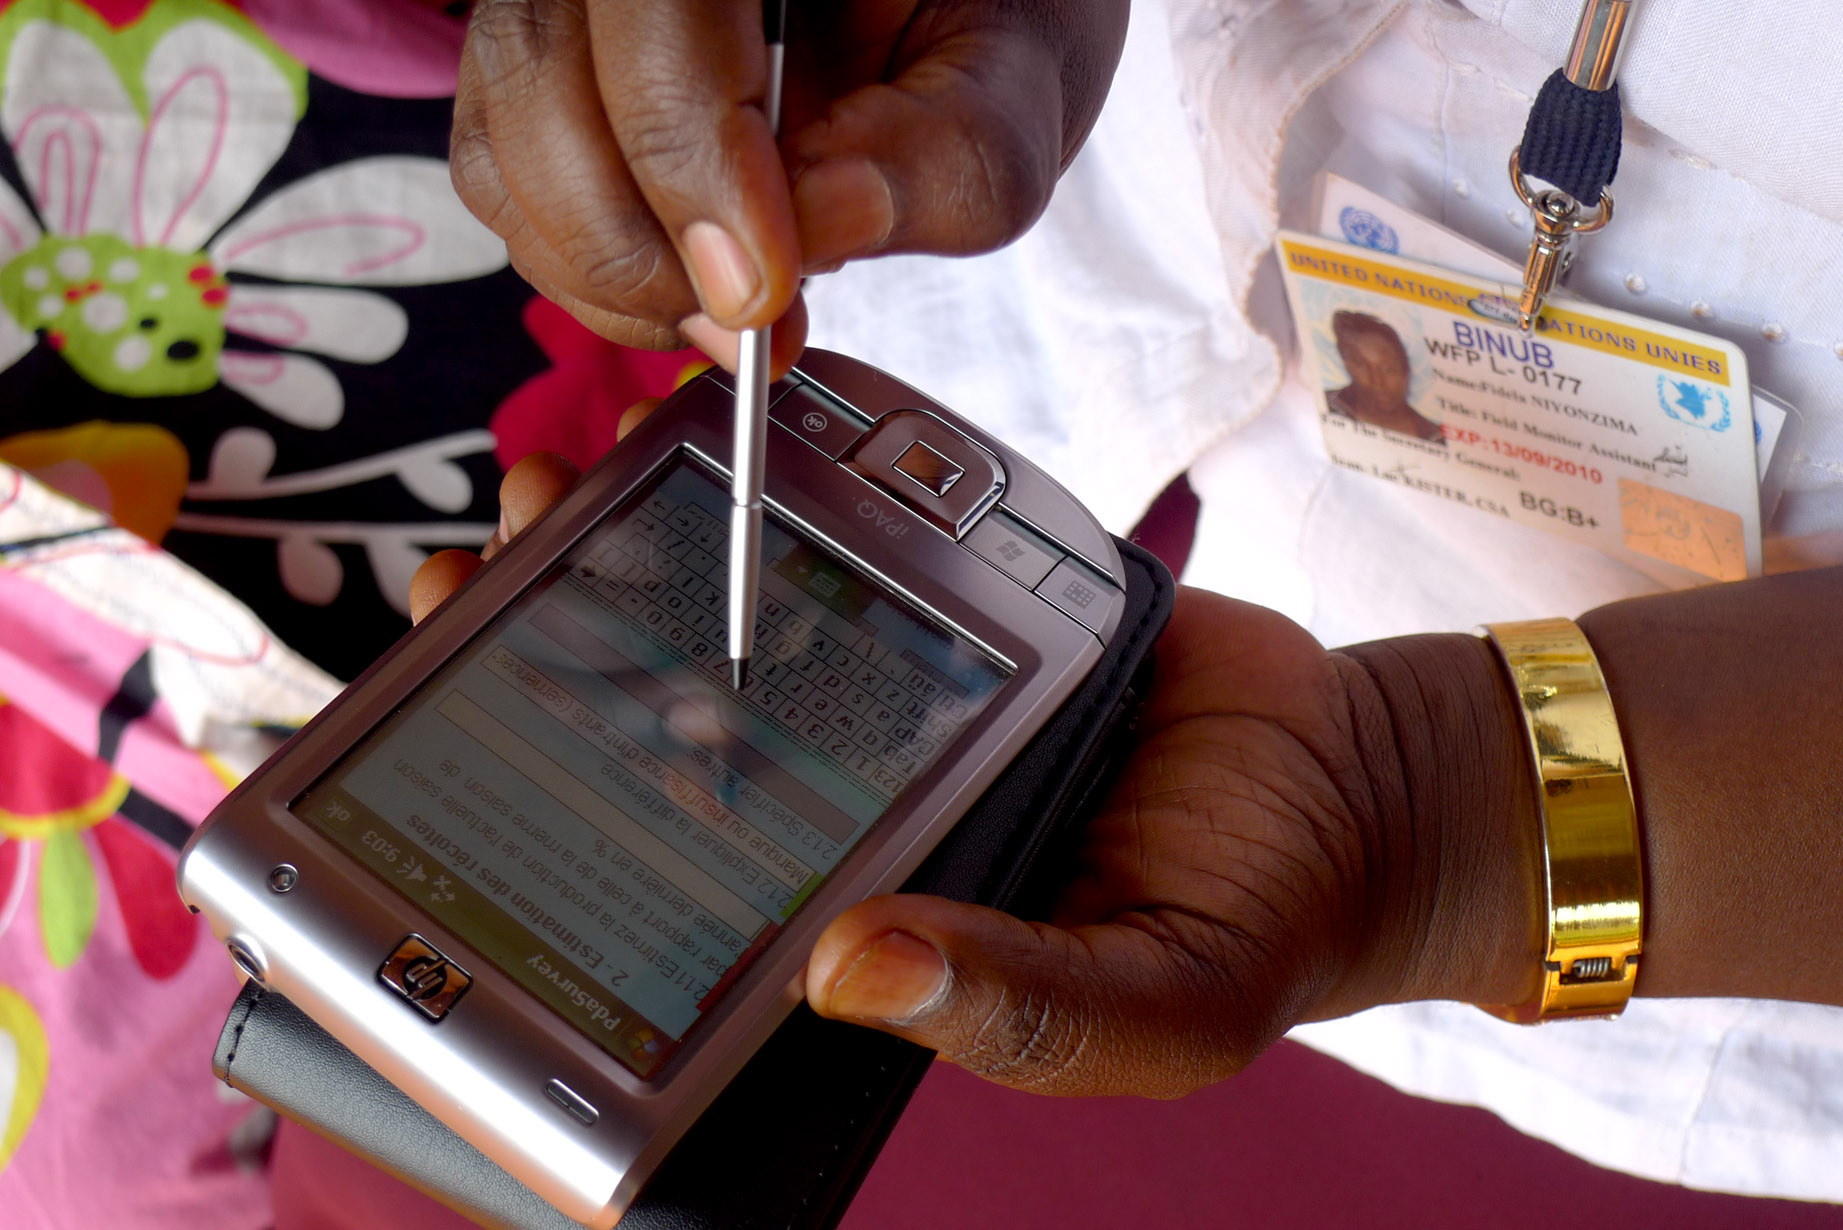 The World Food Programme in Burundi is piloting the use of smart phones in food assessment data collection